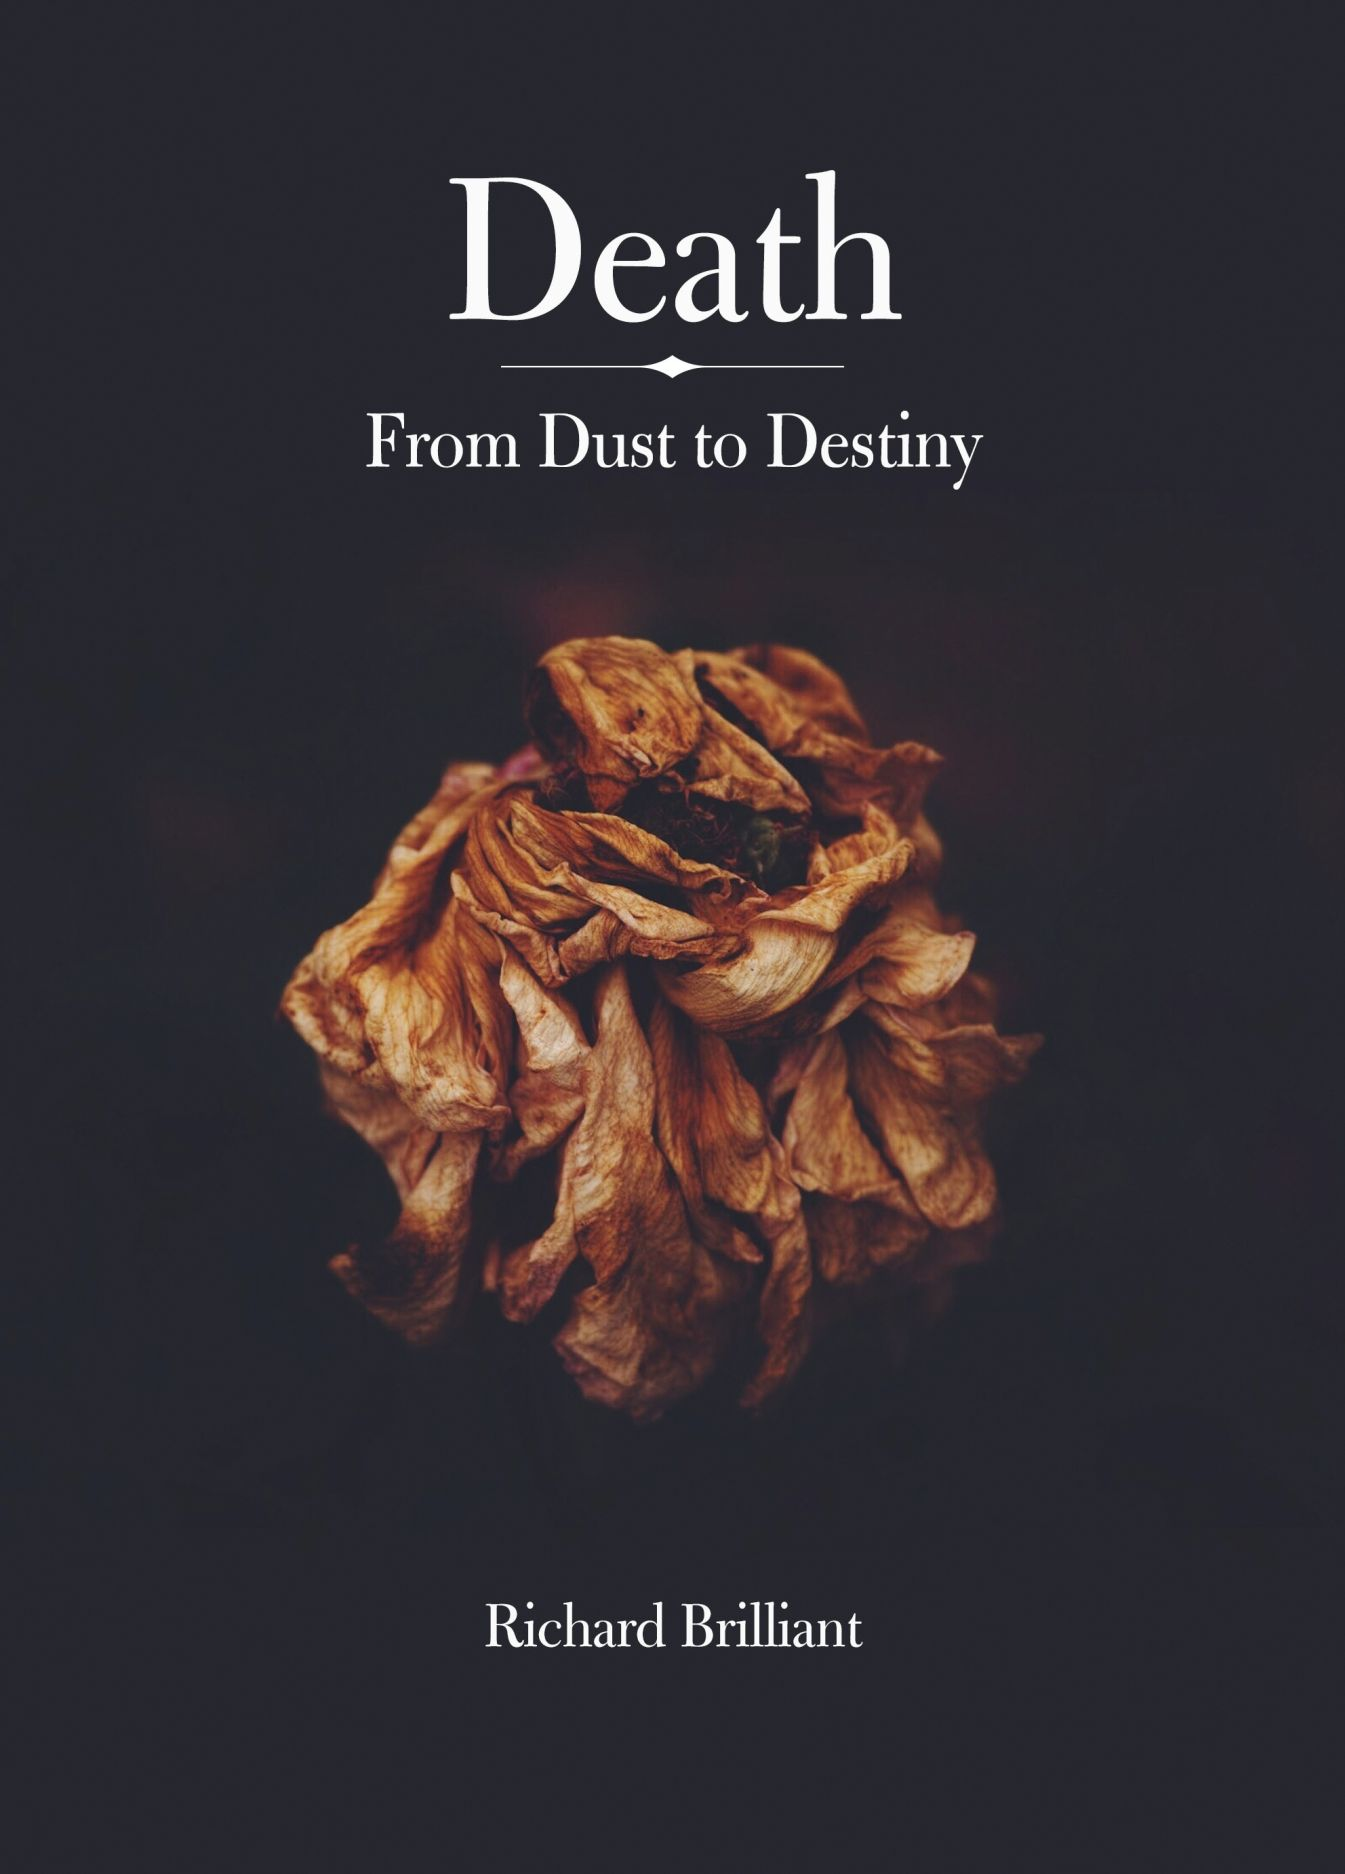 Death: From Dust to Destiny